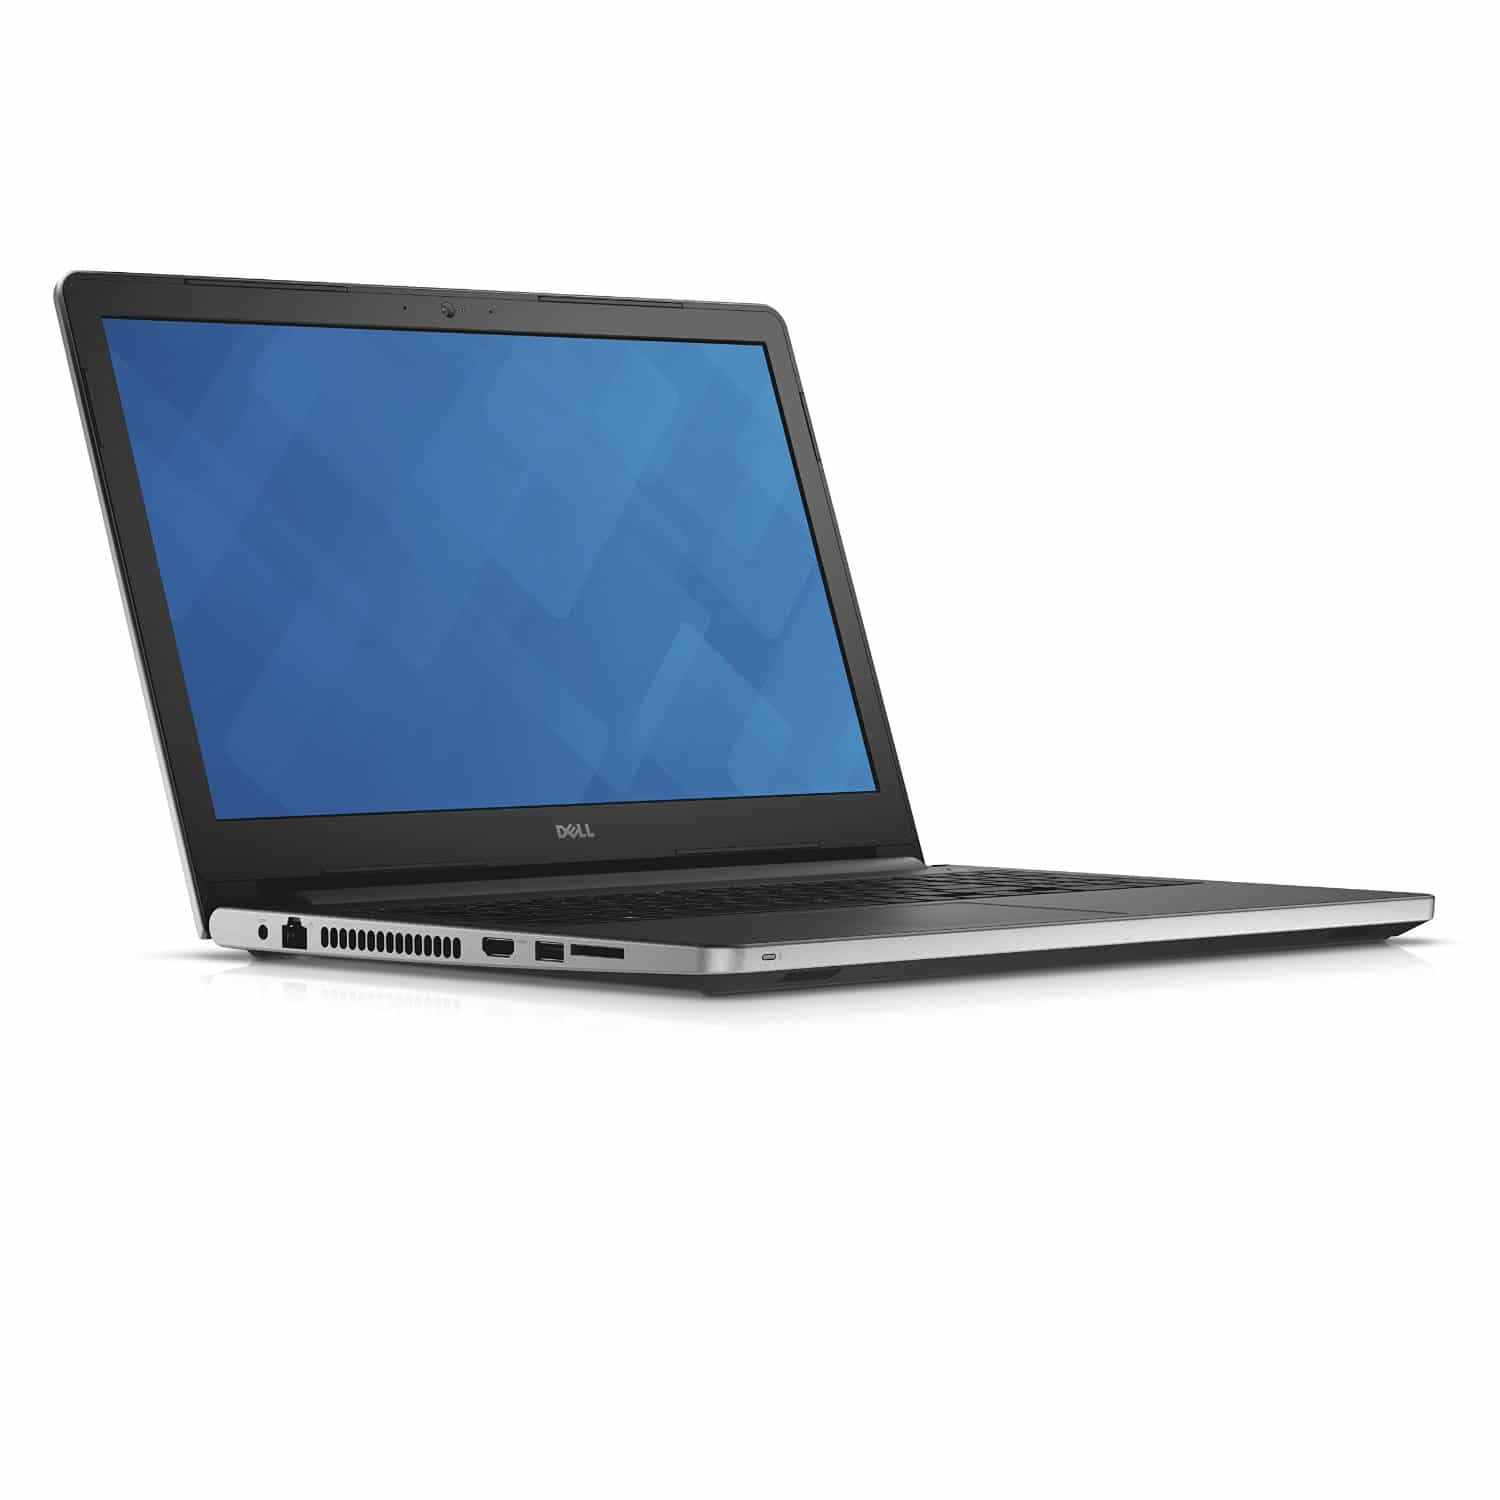 Can someone recommend a decent, inexpensive laptop with good performance?